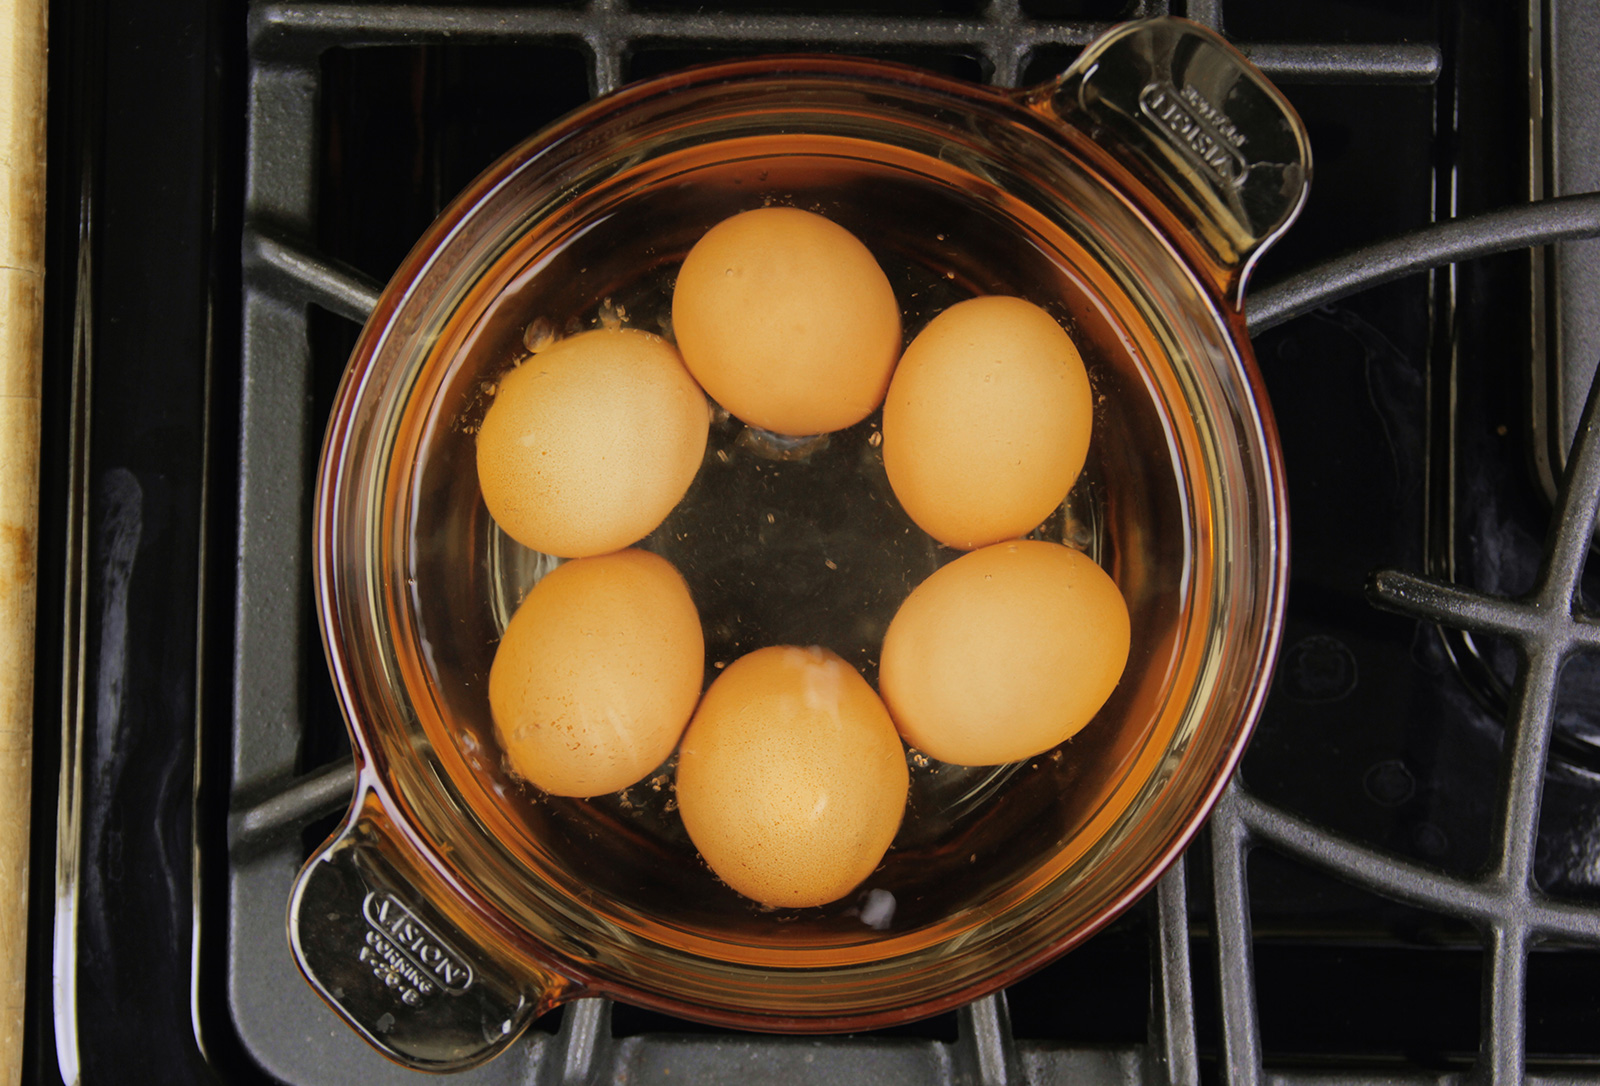 Eggs being hard-boiled on the stovetop.